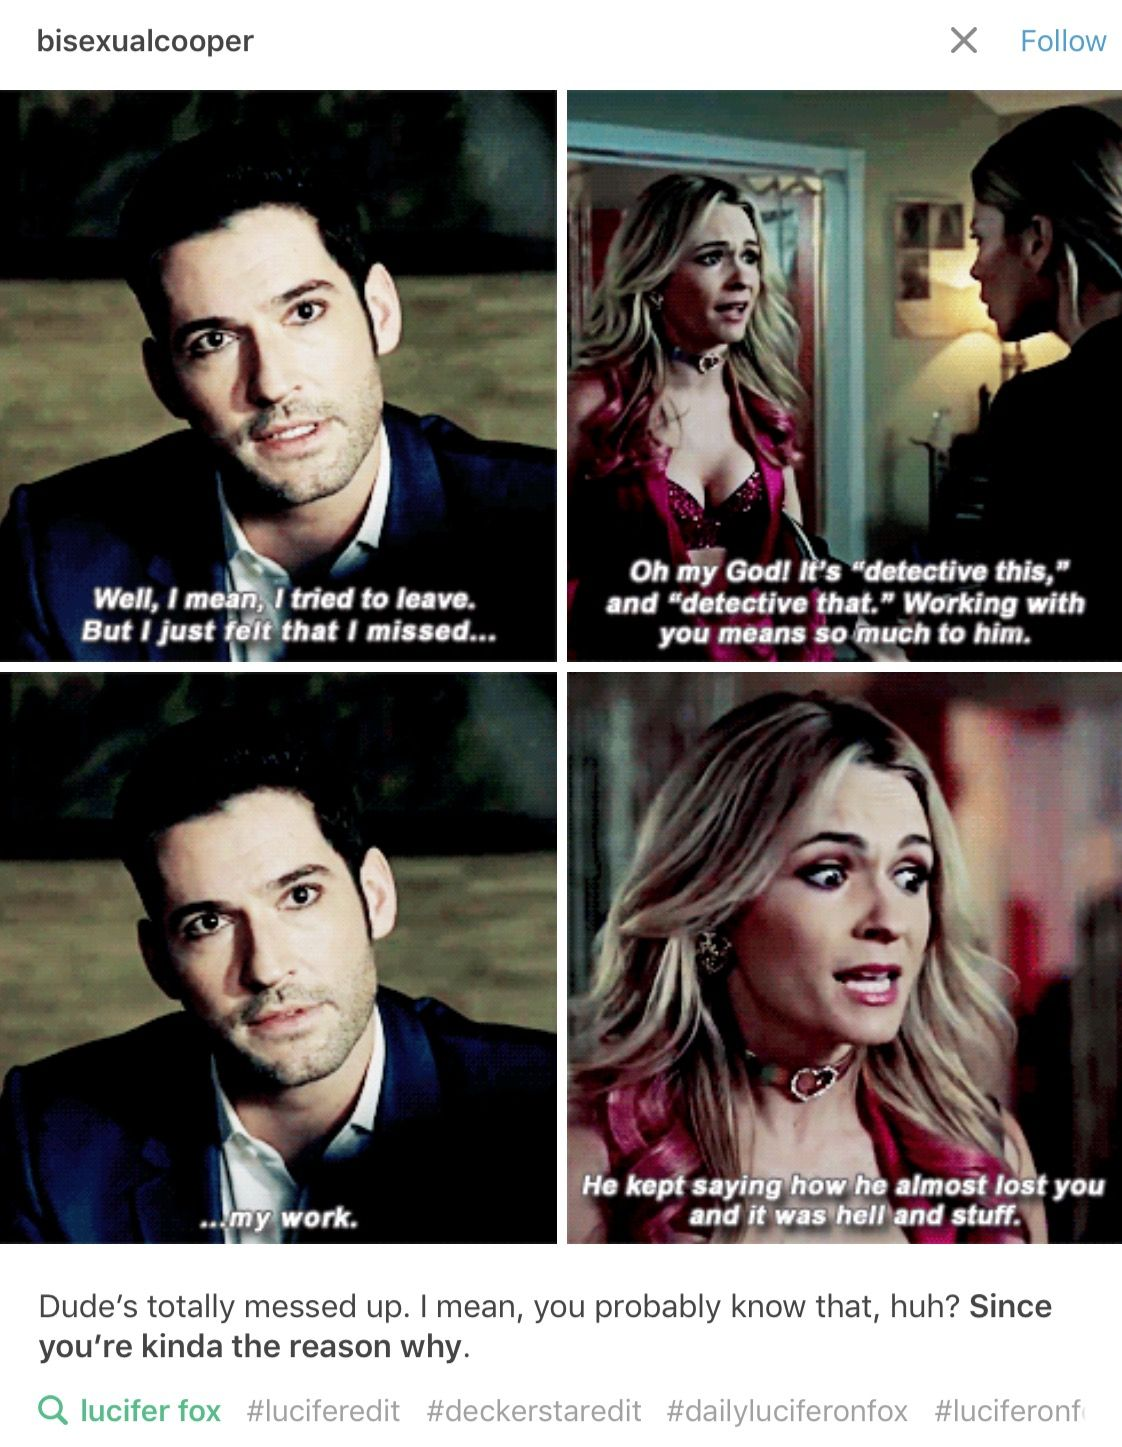 Lucifer S02e01 Aaawwwwww Lucifer Morningstar Lucifer Quote Lucifer